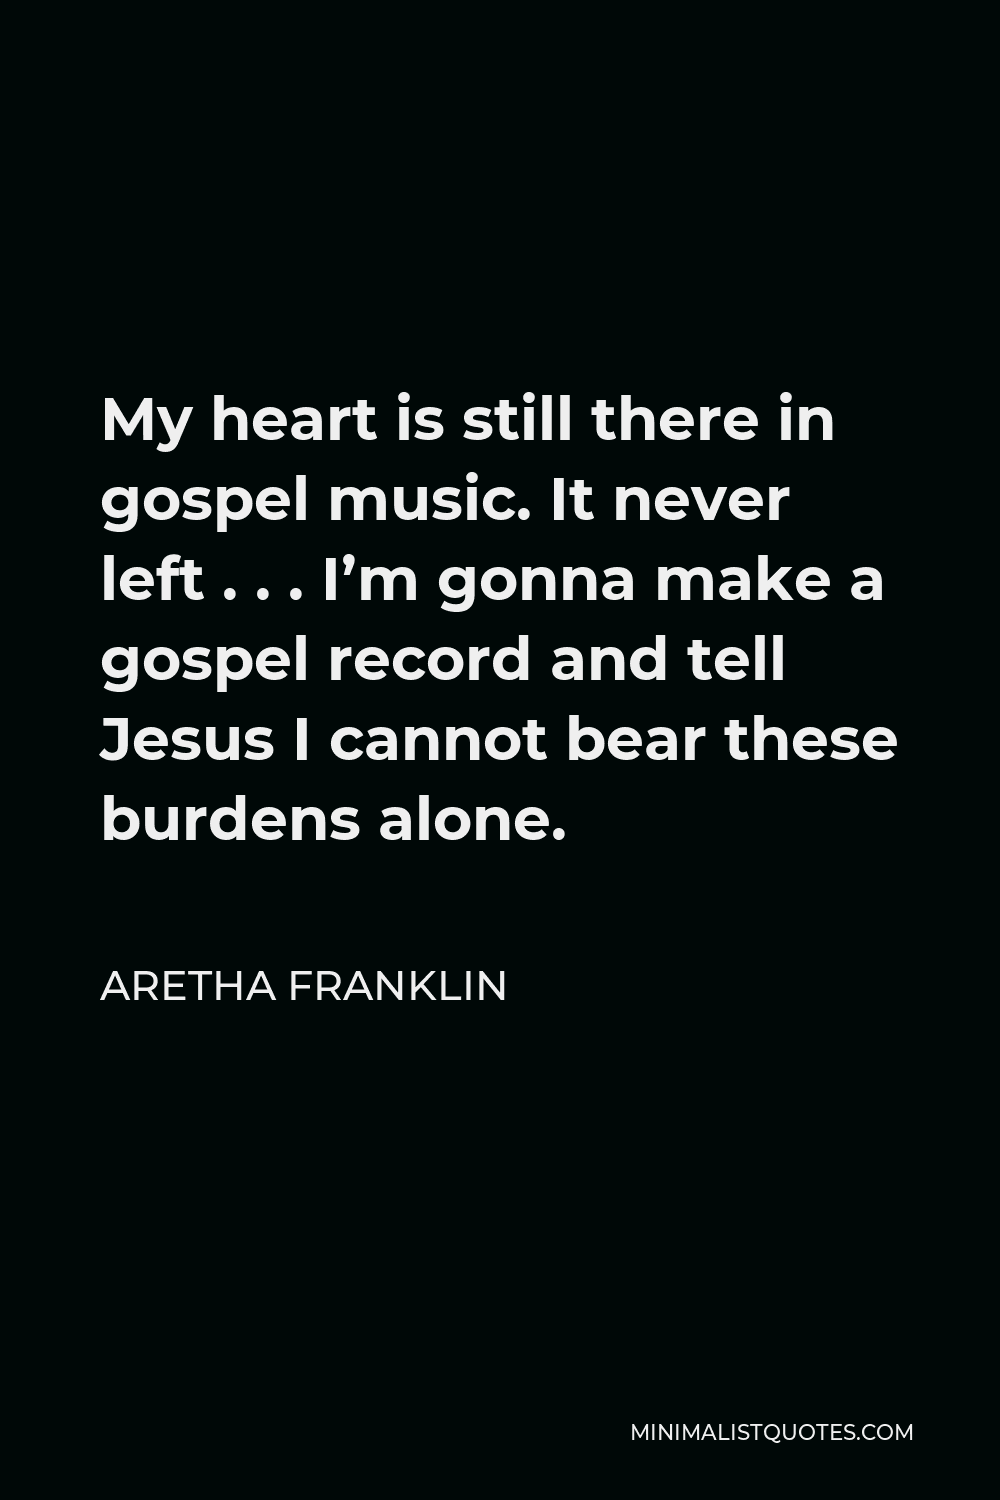 Aretha Franklin Quote - My heart is still there in gospel music. It never left . . . I'm gonna make a gospel record and tell Jesus I cannot bear these burdens alone.